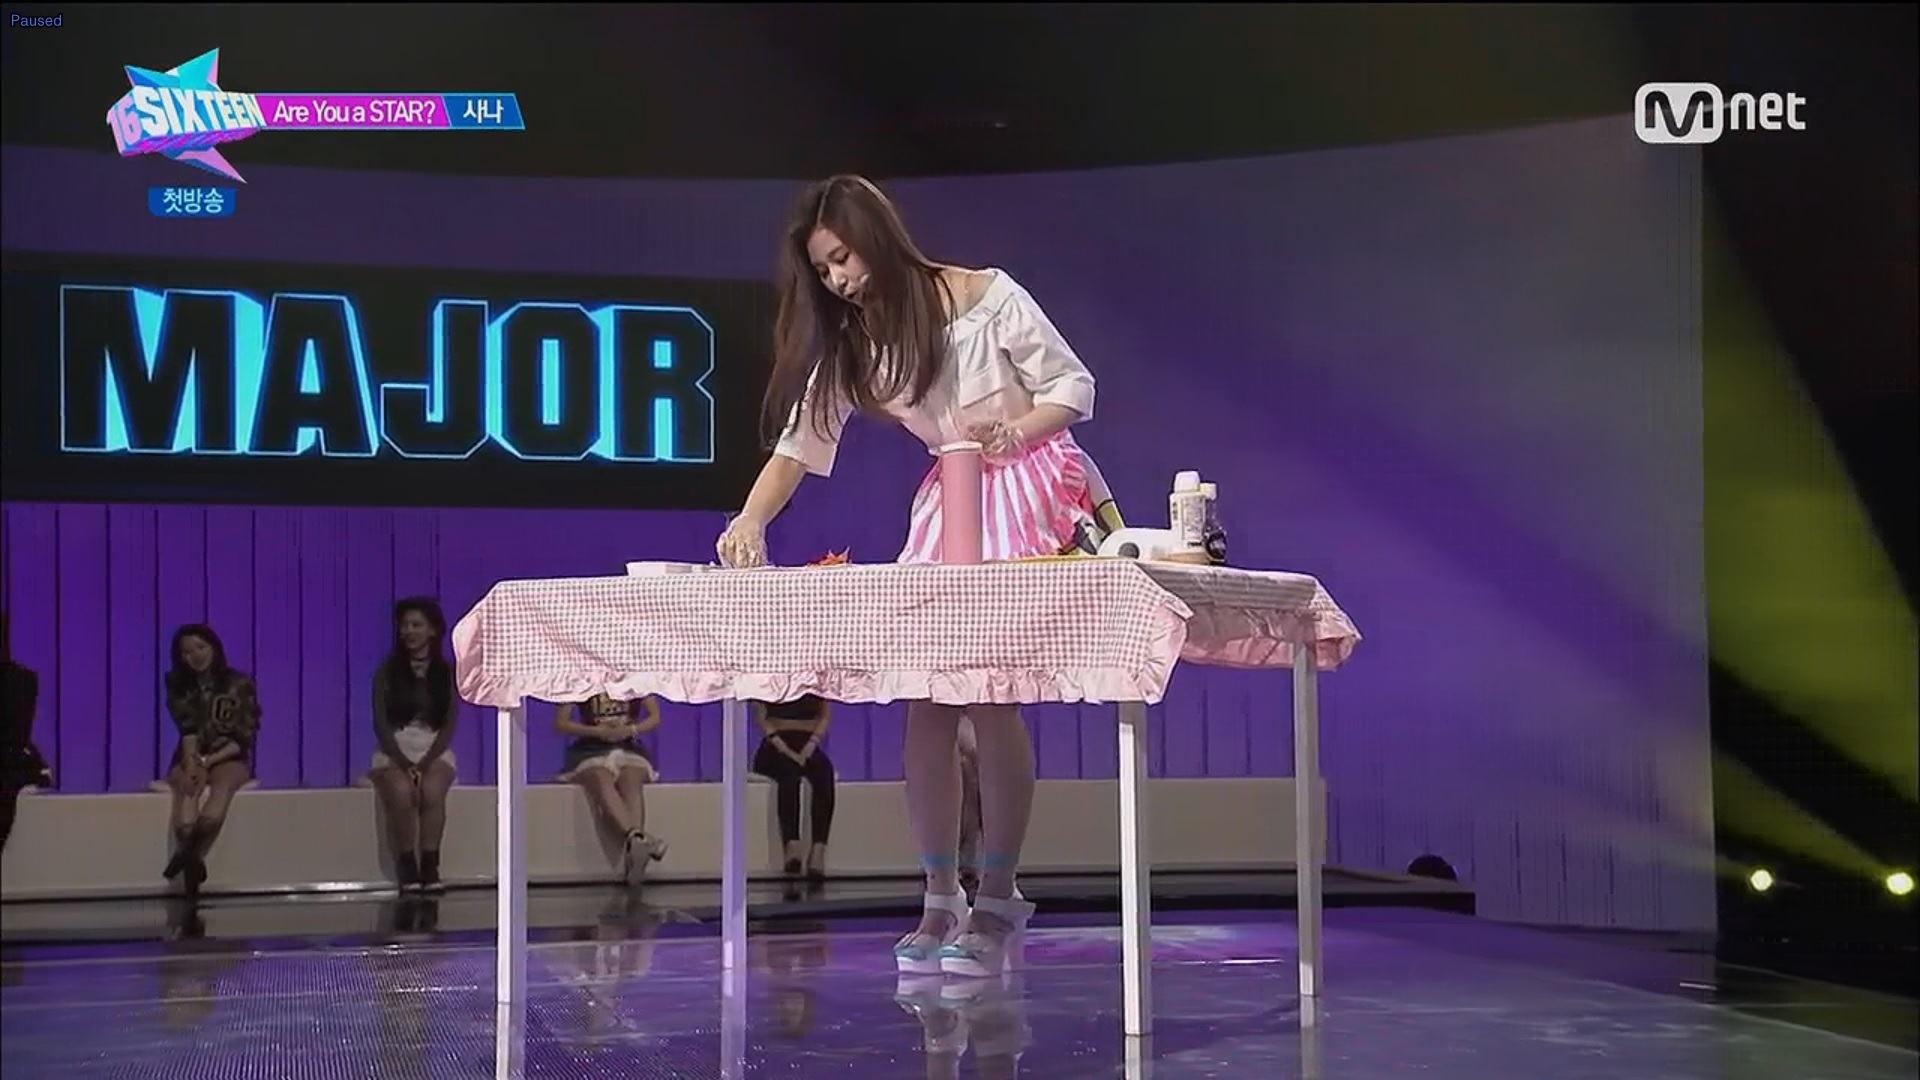 Sana prepares spring rolls for JYP on stage